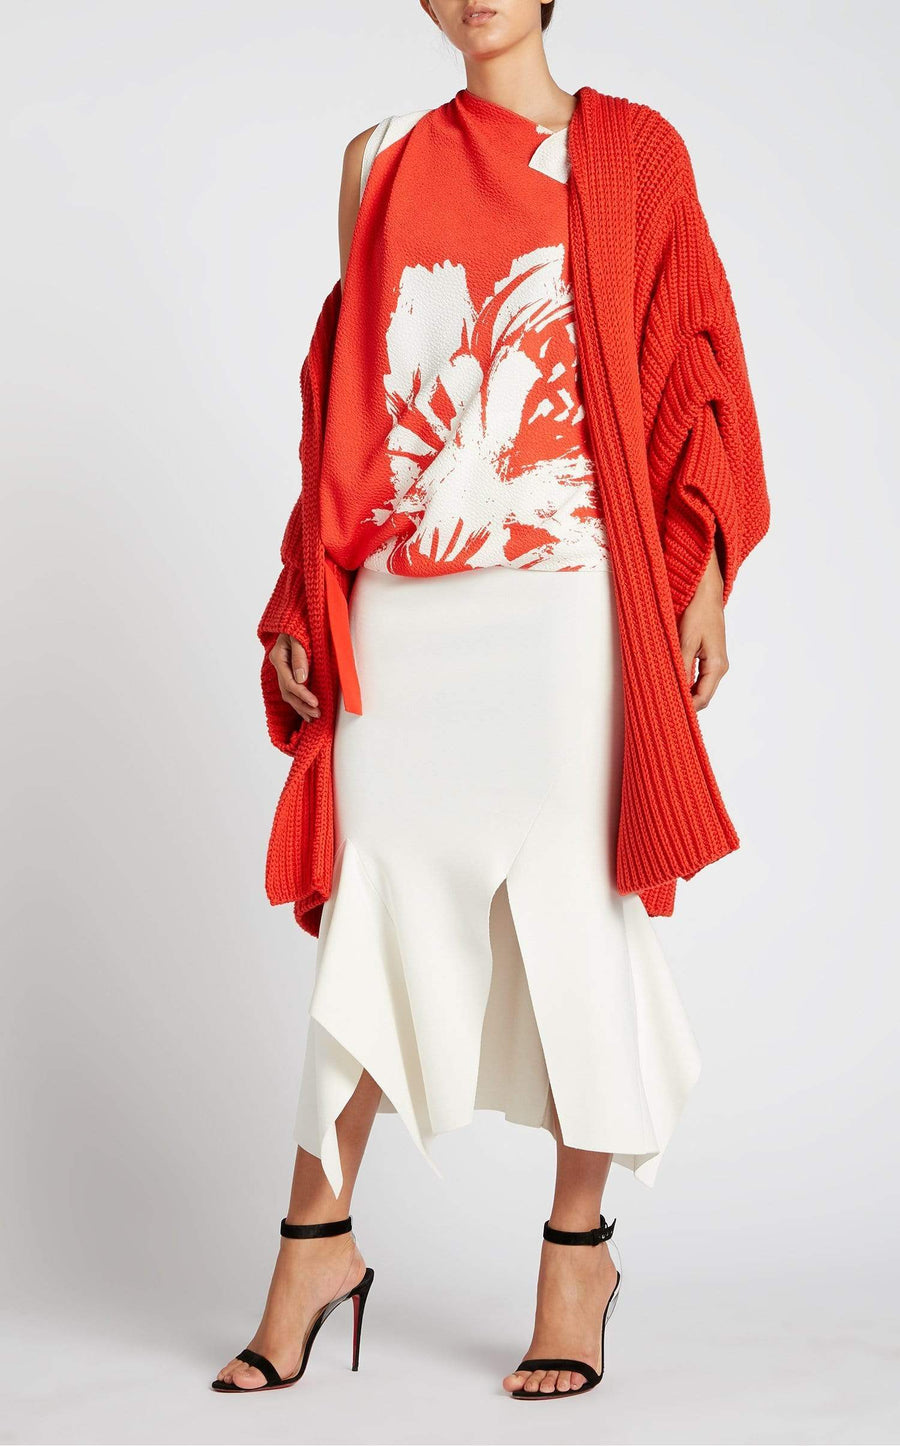 Ives Coat In Poppy Red from Roland Mouret